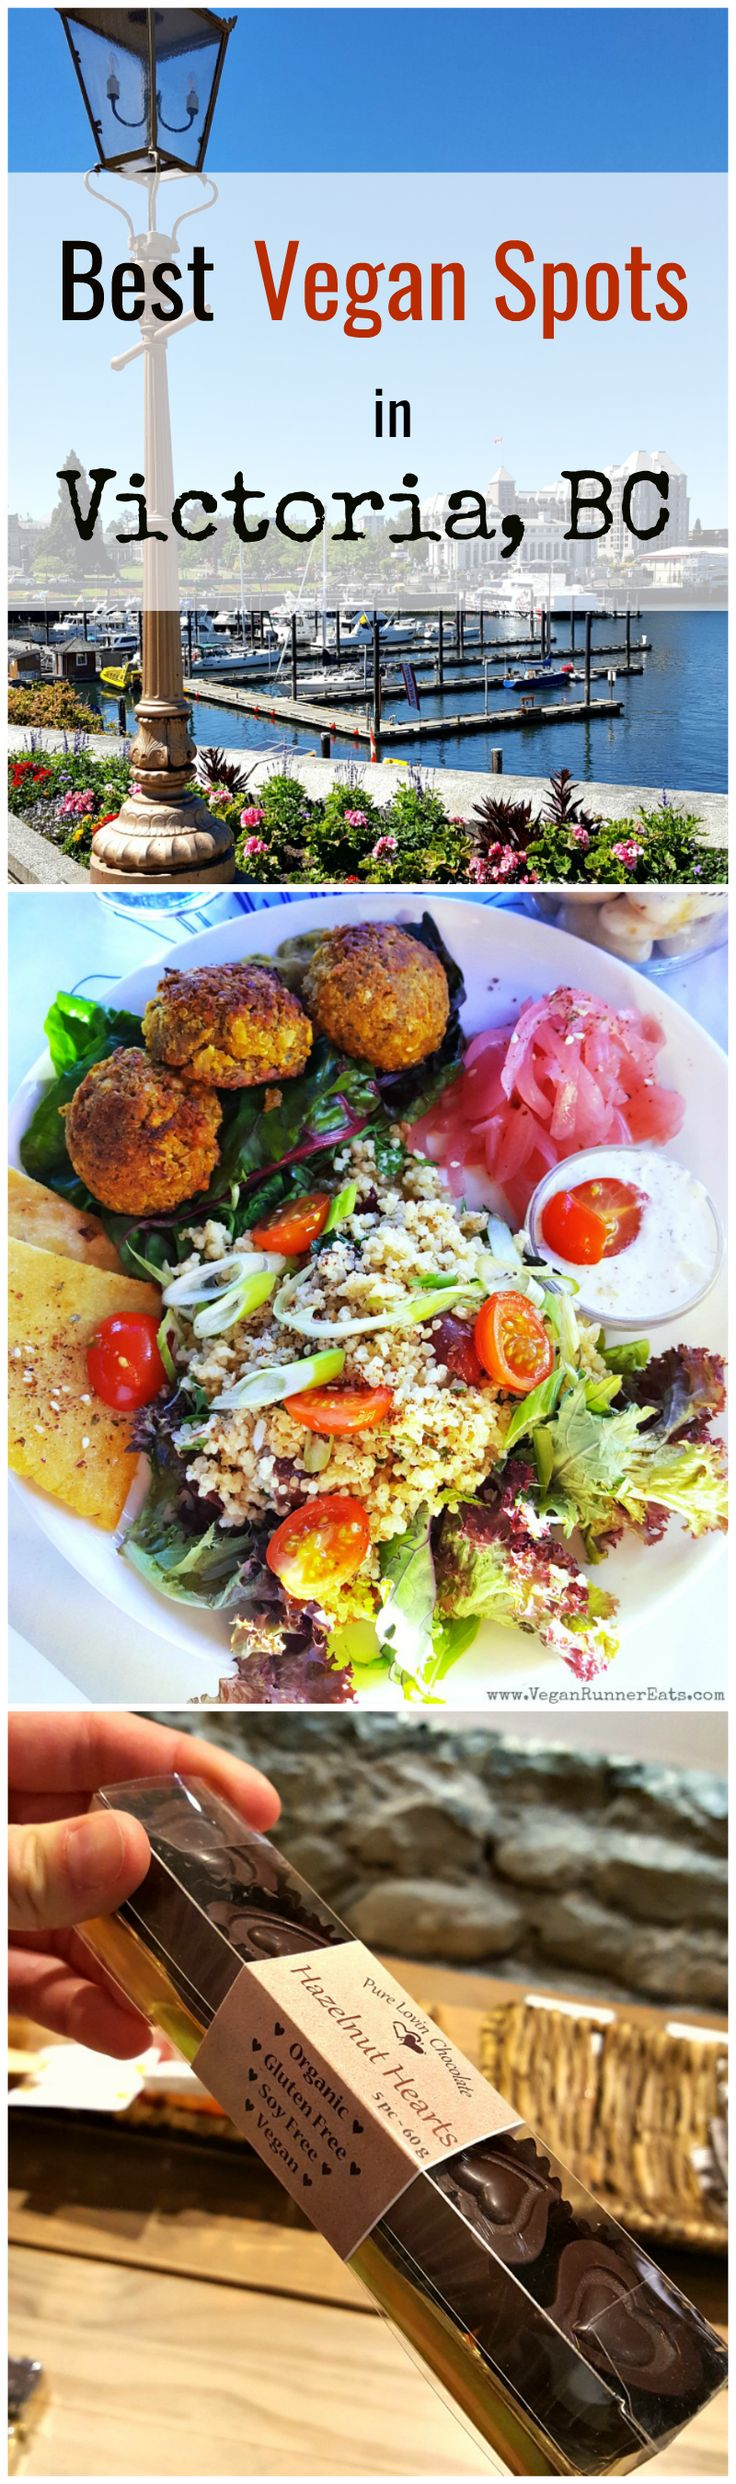 Best vegan restaurants and shops in Victoria, BC. Visiting Vancouver Island in British Columbia? Check out these best vegan and vegan-friendly spots in Victoria, from Green Cuisine Vegan Buffet and be Love bistro to Pure Lovin'Chocolate Shop and Rebar diner!